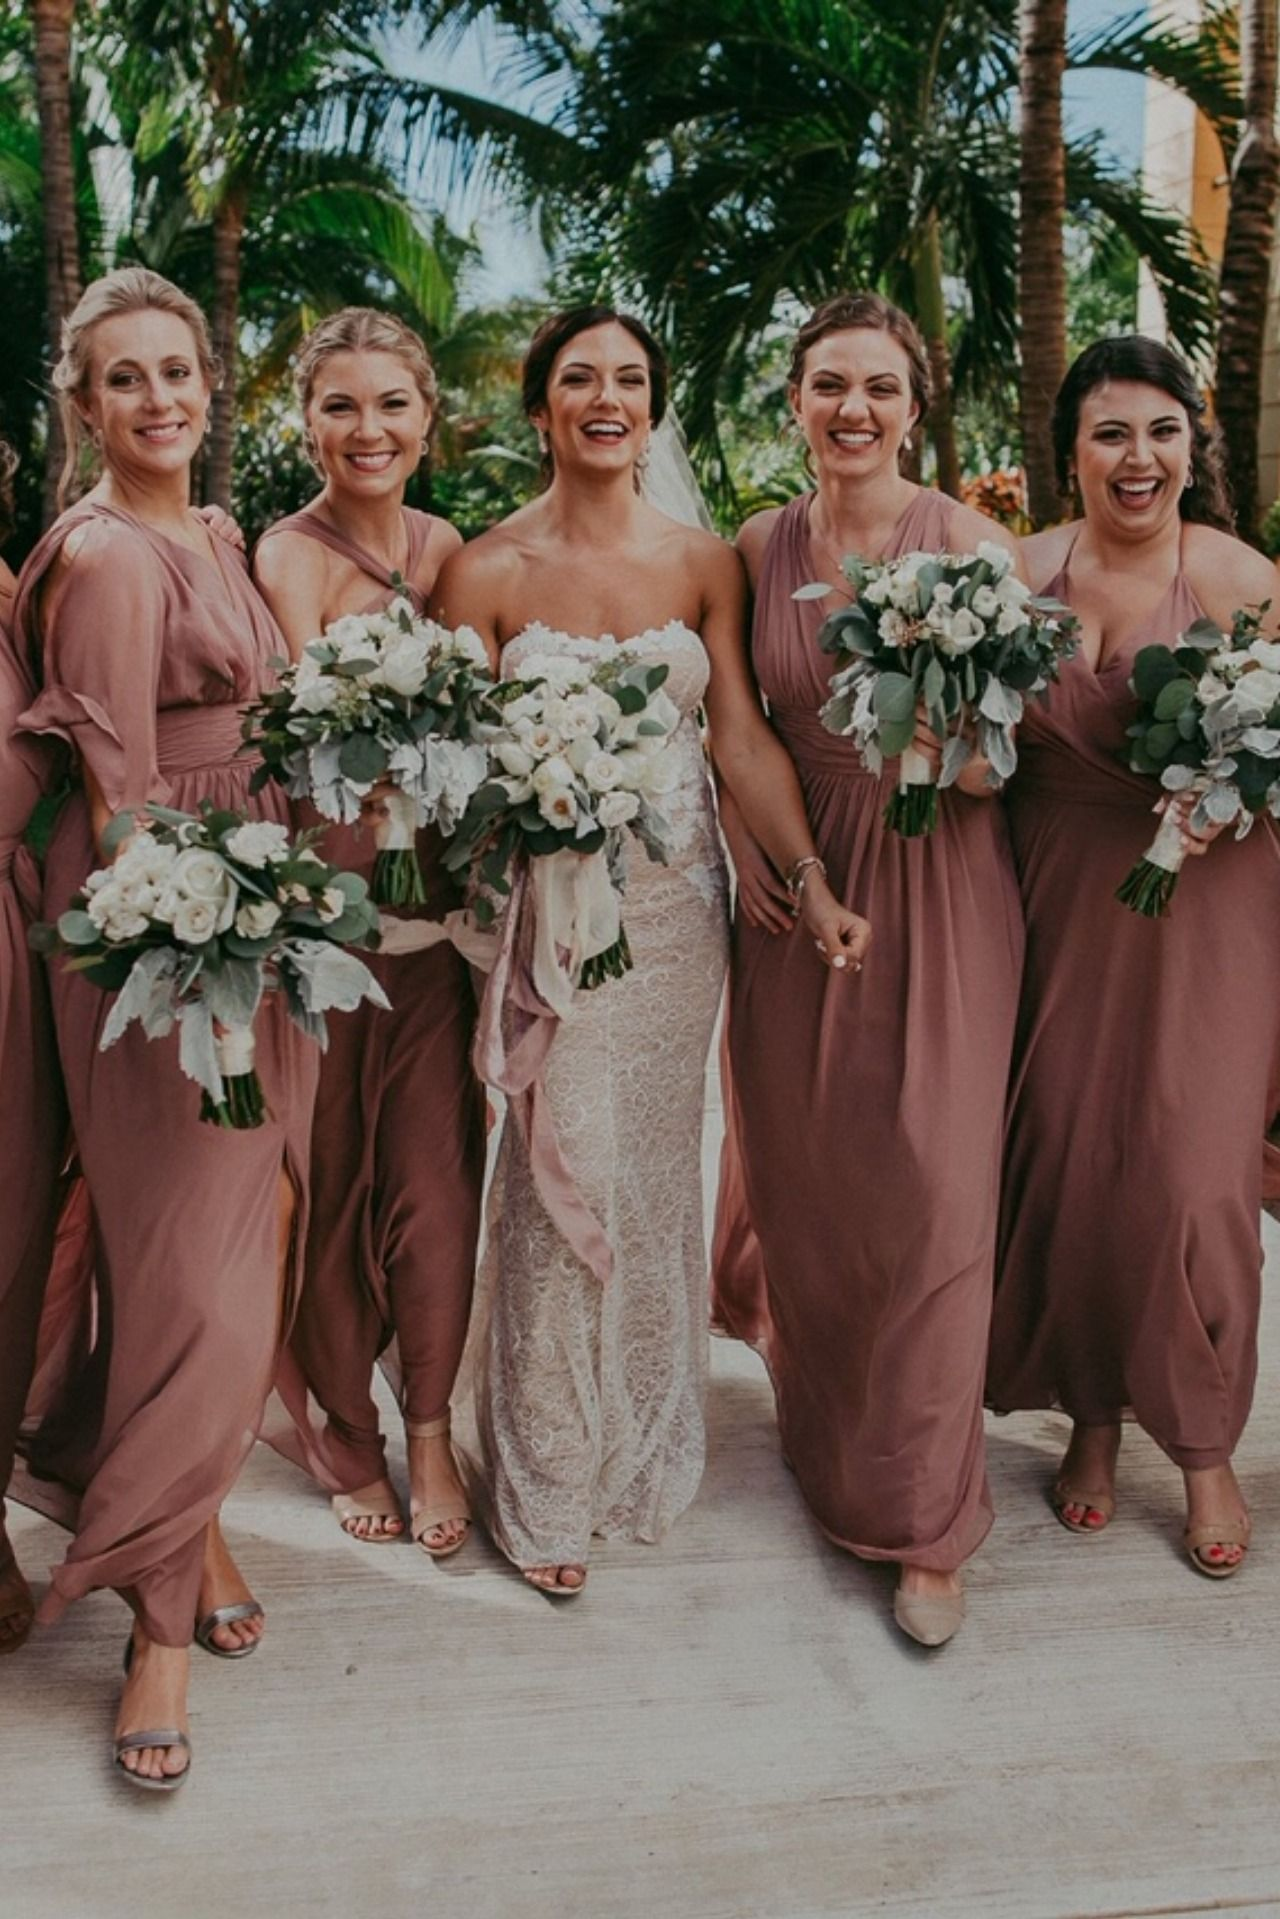 Dusty Pink Bridesmaid Dresses Try Dessy Dusty Pink Bridesmaid Dresses Rose Pink Bridesmaid Dresses Pink Bridesmaid Dresses